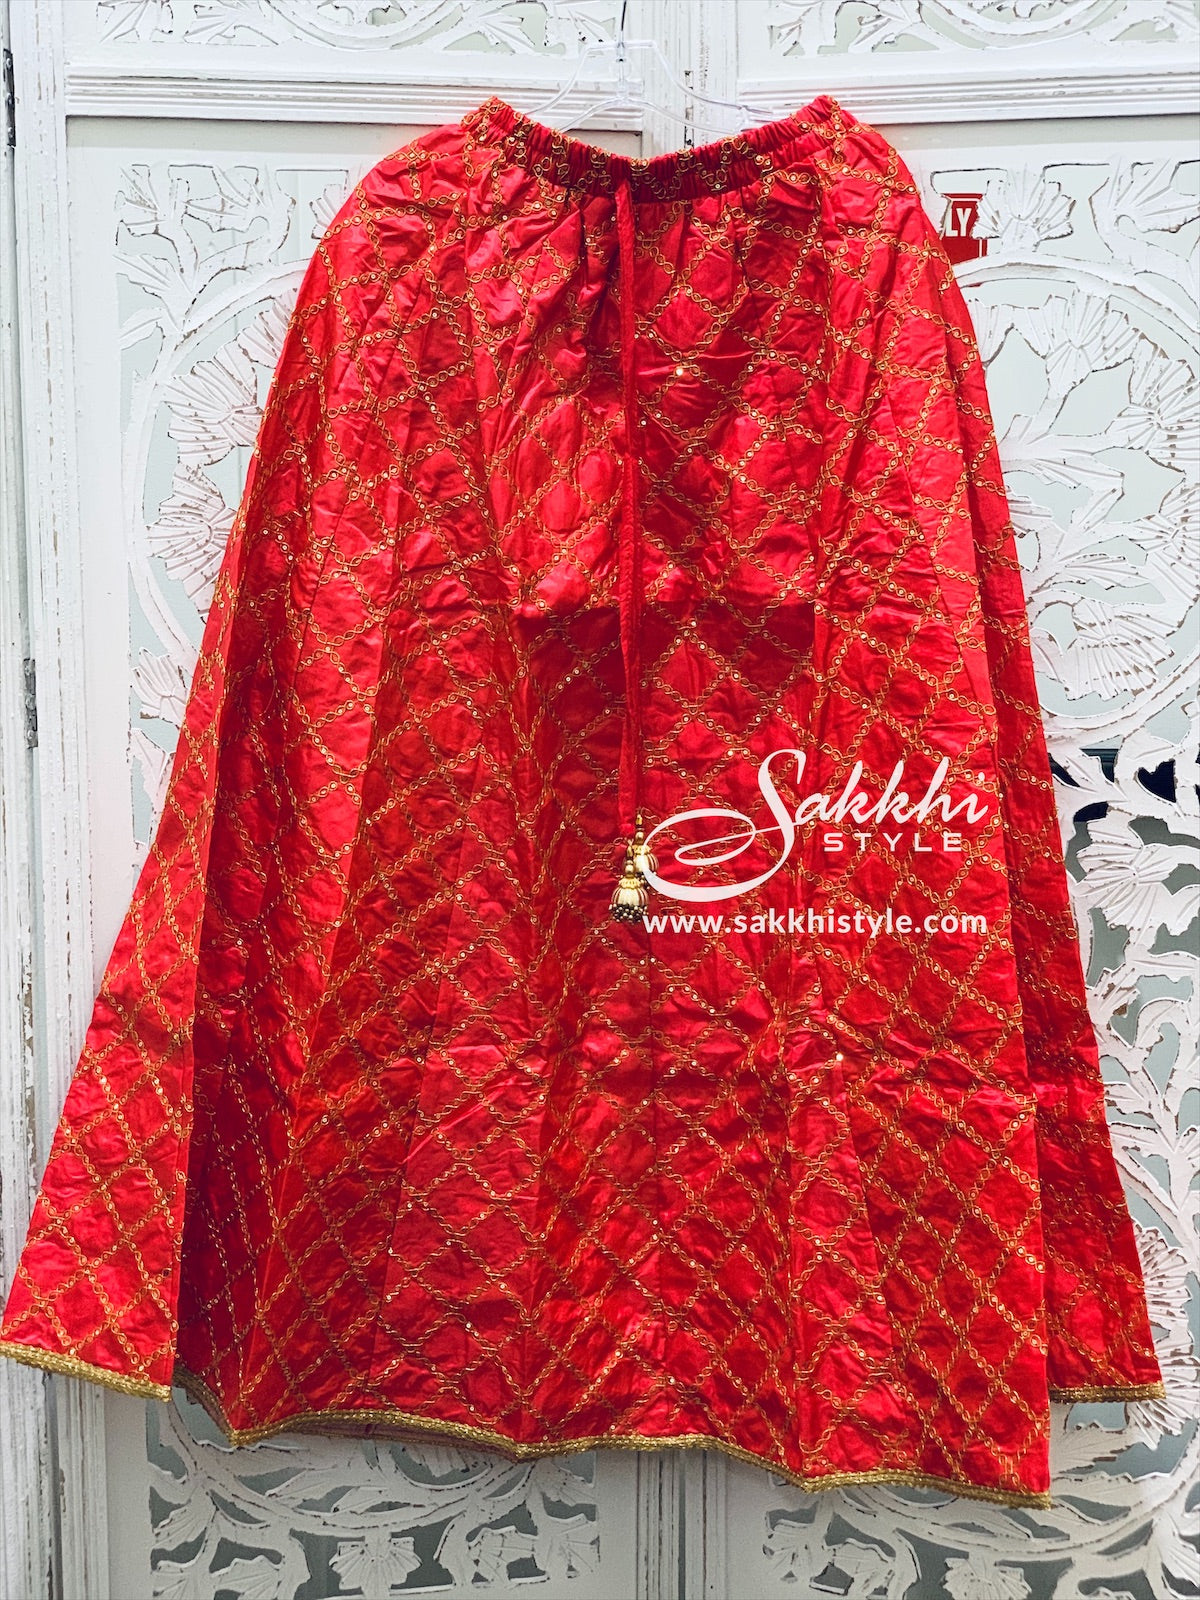 Red and Gold Skirt - Sakkhi Style